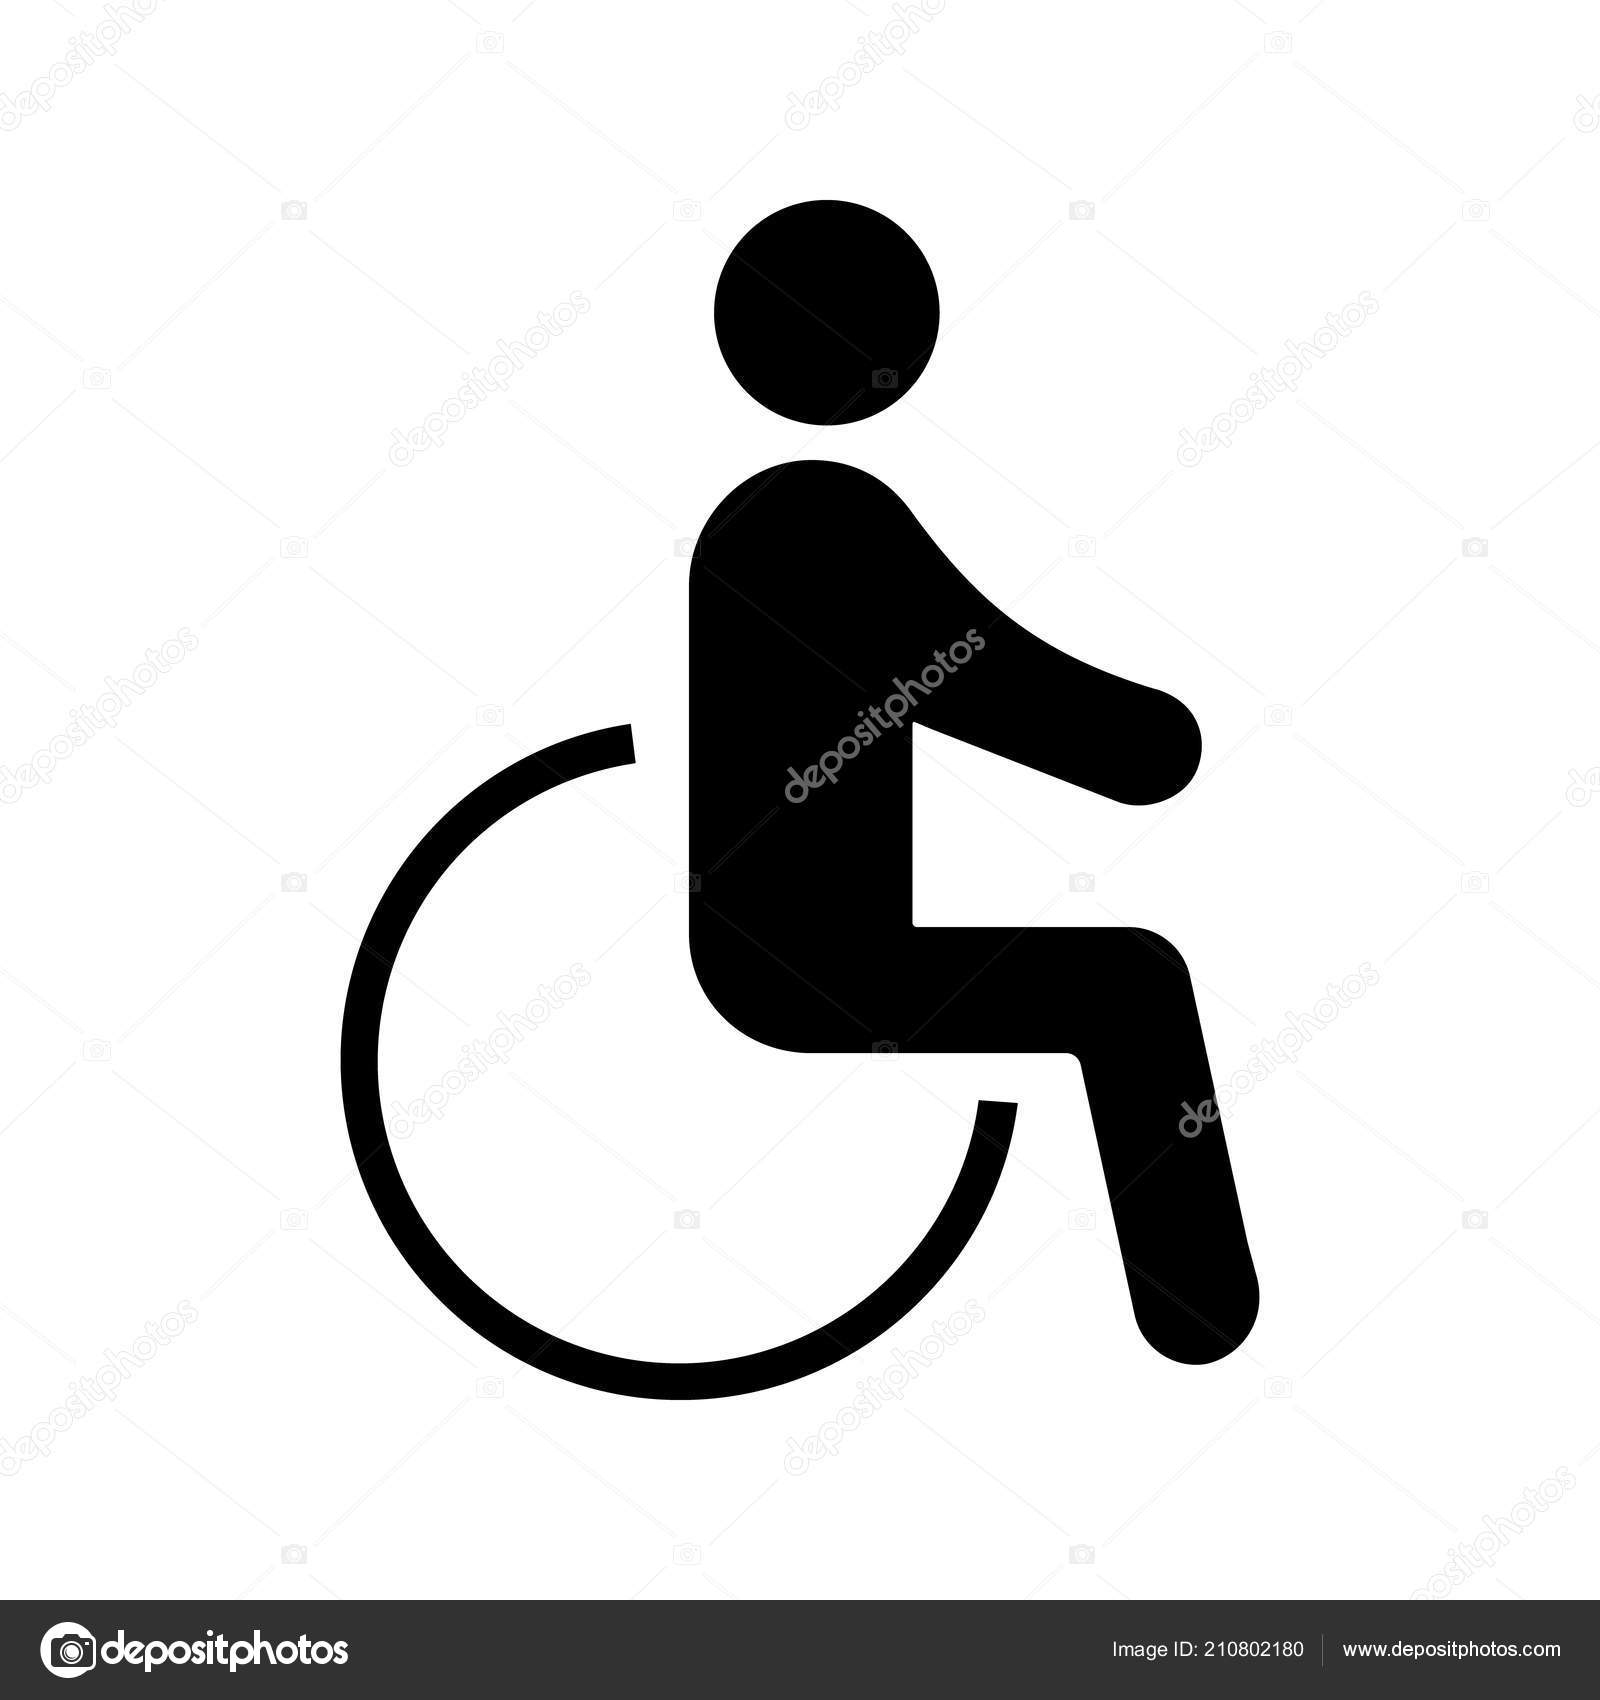 accessible glyph icon disability disabled person handicap man